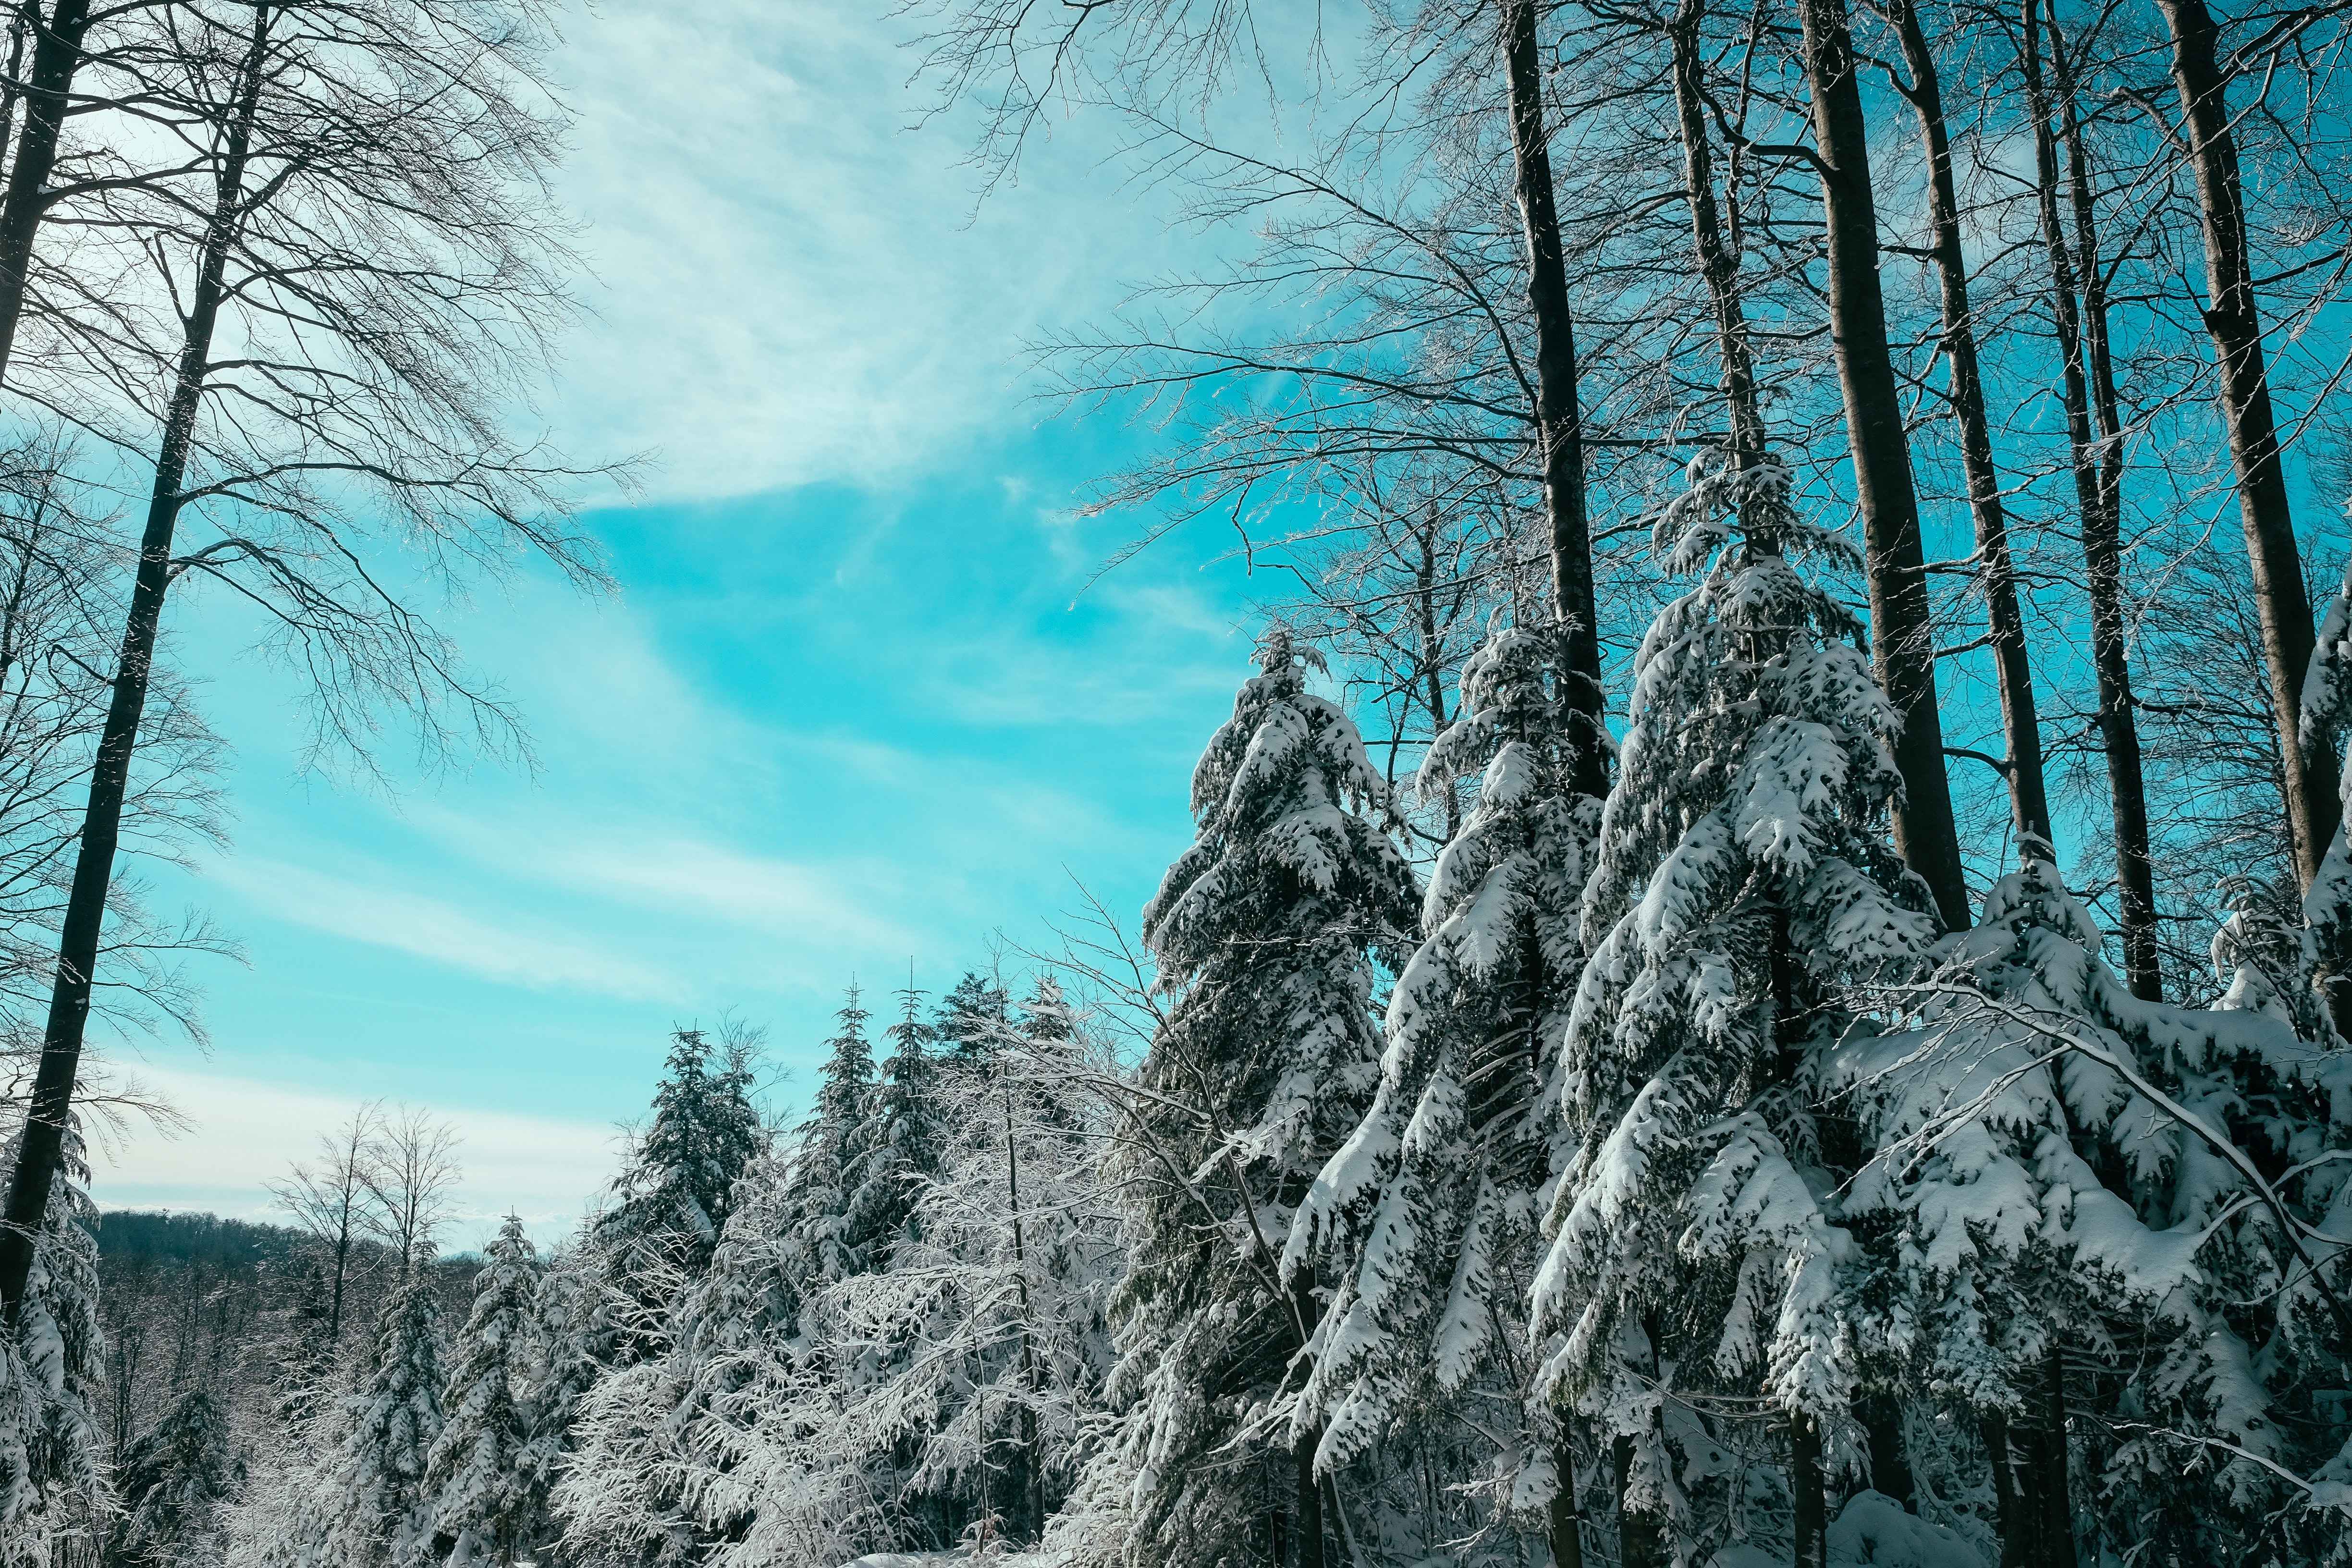 A ground view shot of a pine forest covered in snow on a blue sky day in Platak, Croatia